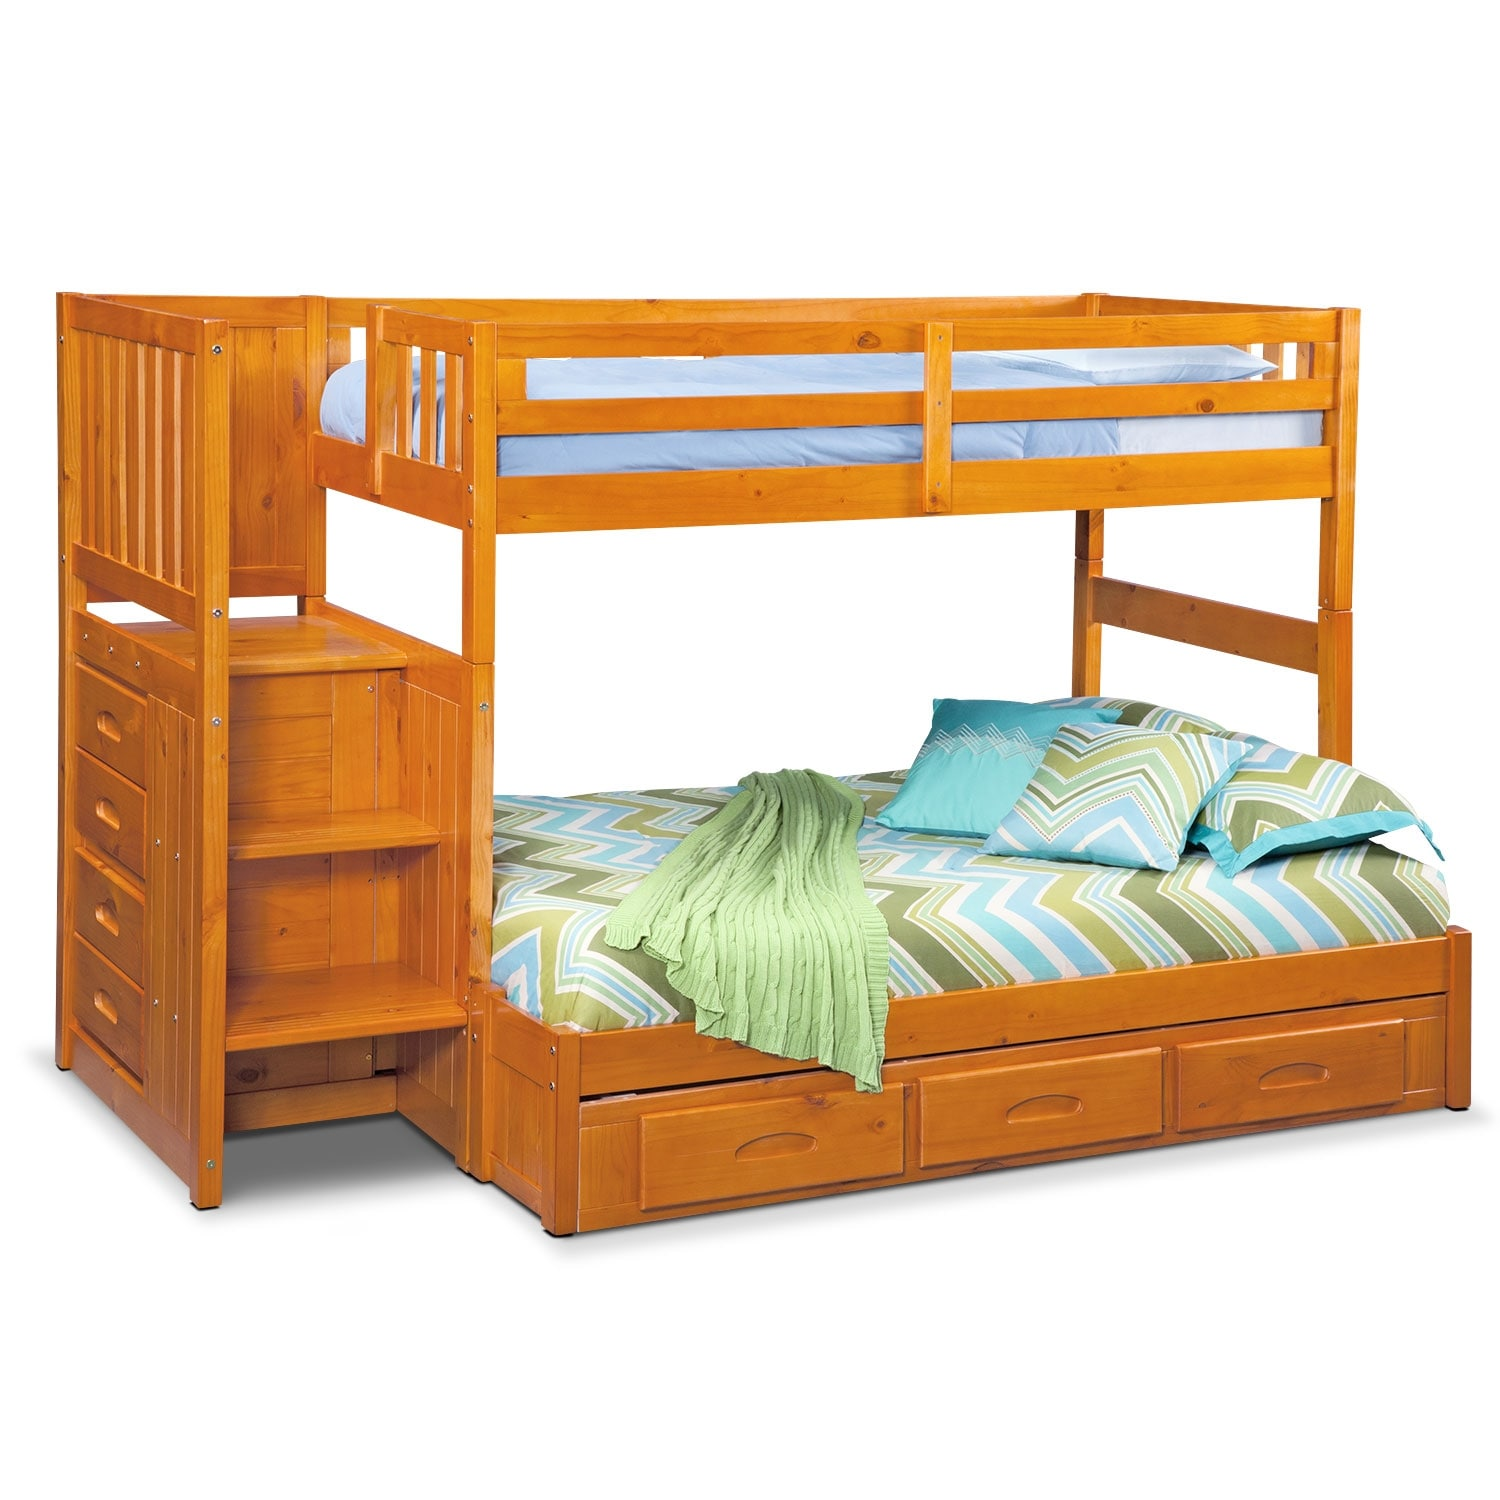 Ranger twin over full bunk bed with storage stairs underbed drawers pine american - Loft bed with drawers underneath ...